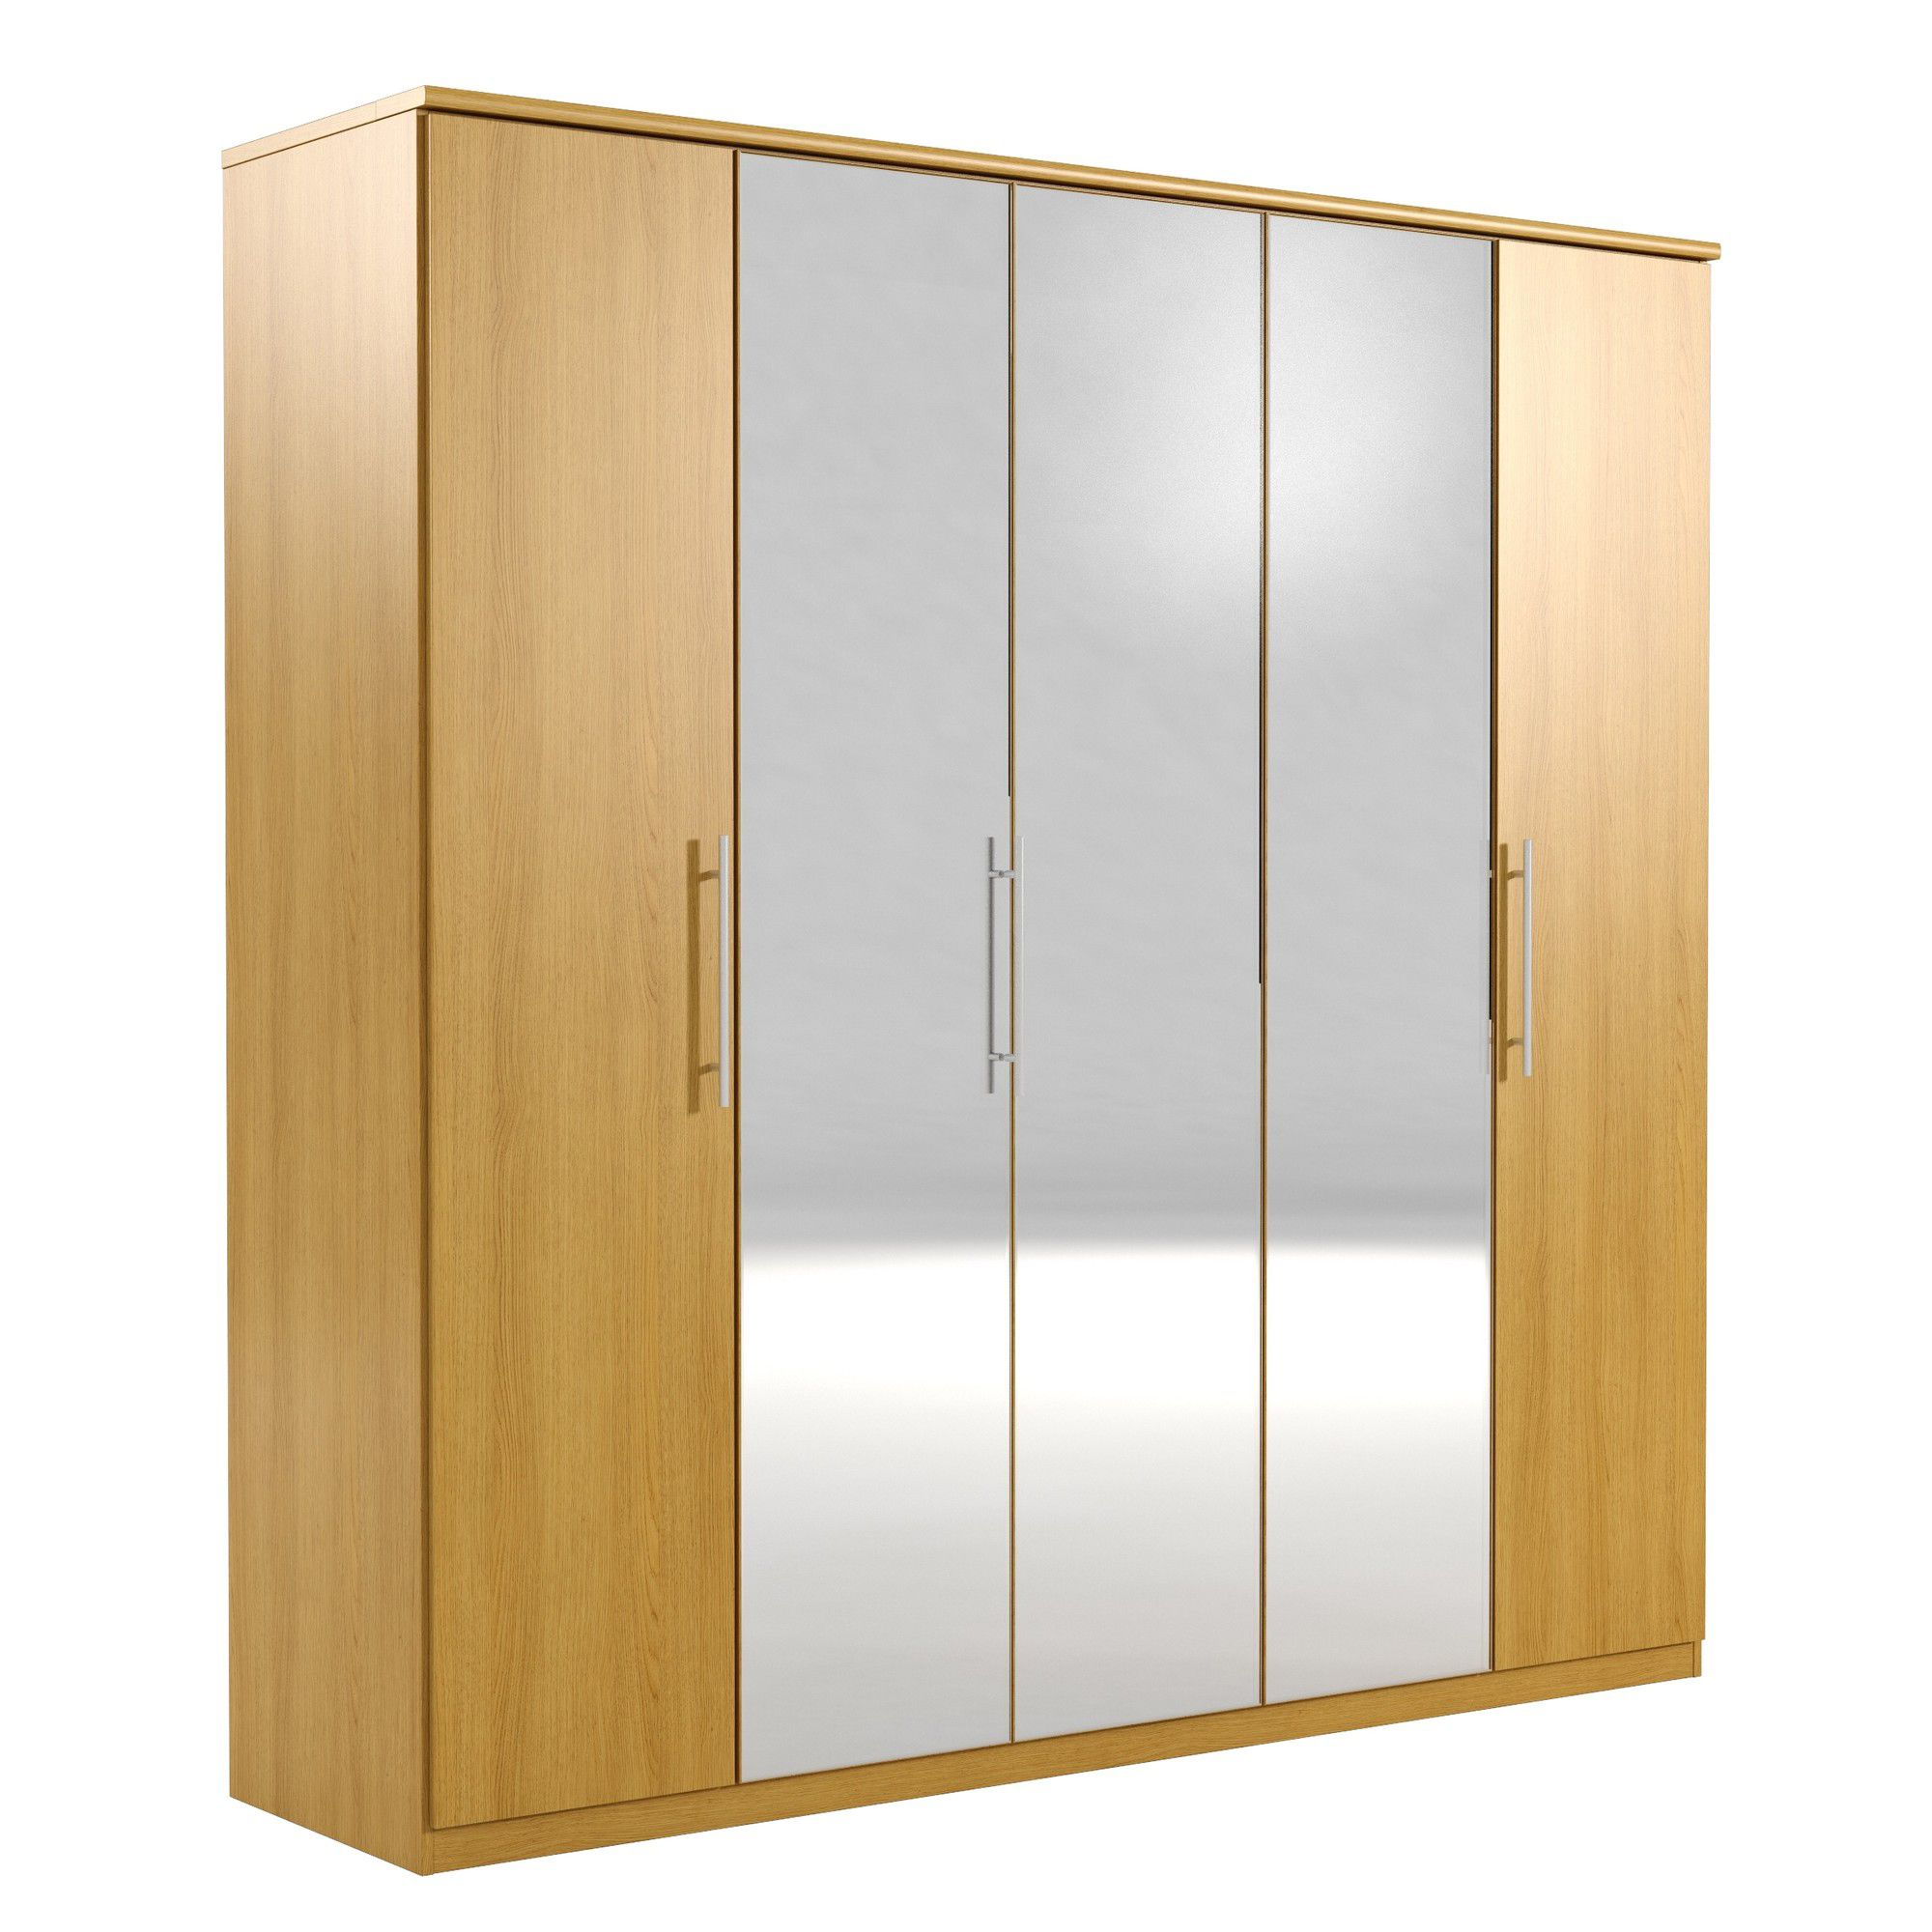 Urbane Designs Prague 5 Door Wardrobe - Oak at Tesco Direct